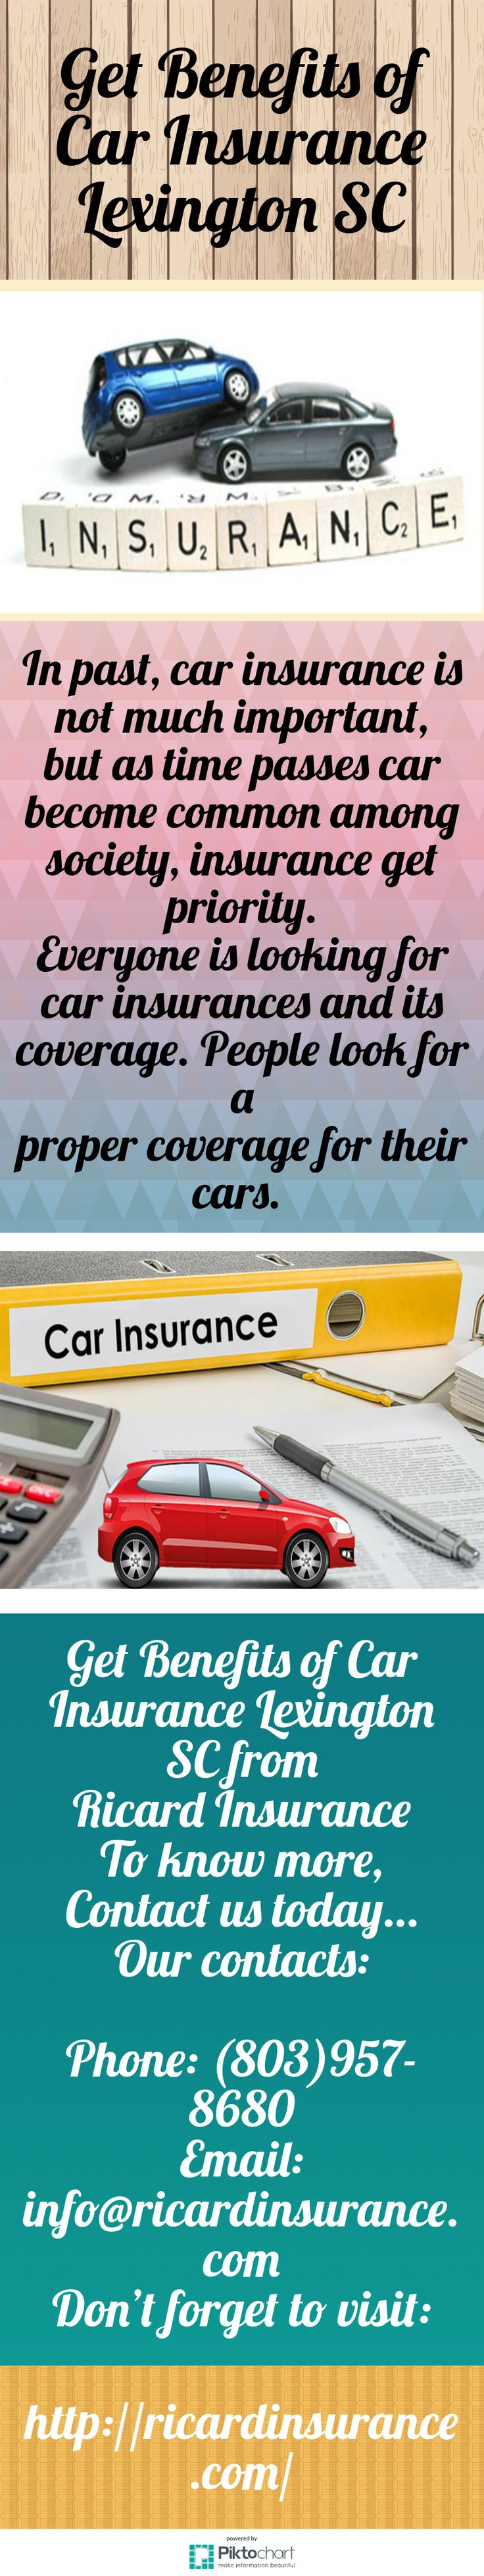 In past, car insurance is not much important, but as time passes car become common among society, insurance get priority. Everyone is looking for car insurances and its coverage. People look for a proper coverage for their cars. Get Benefits of Car Insurance Lexington SC from Ricard Insurance, visit our website:  http://ricardinsurance.com/